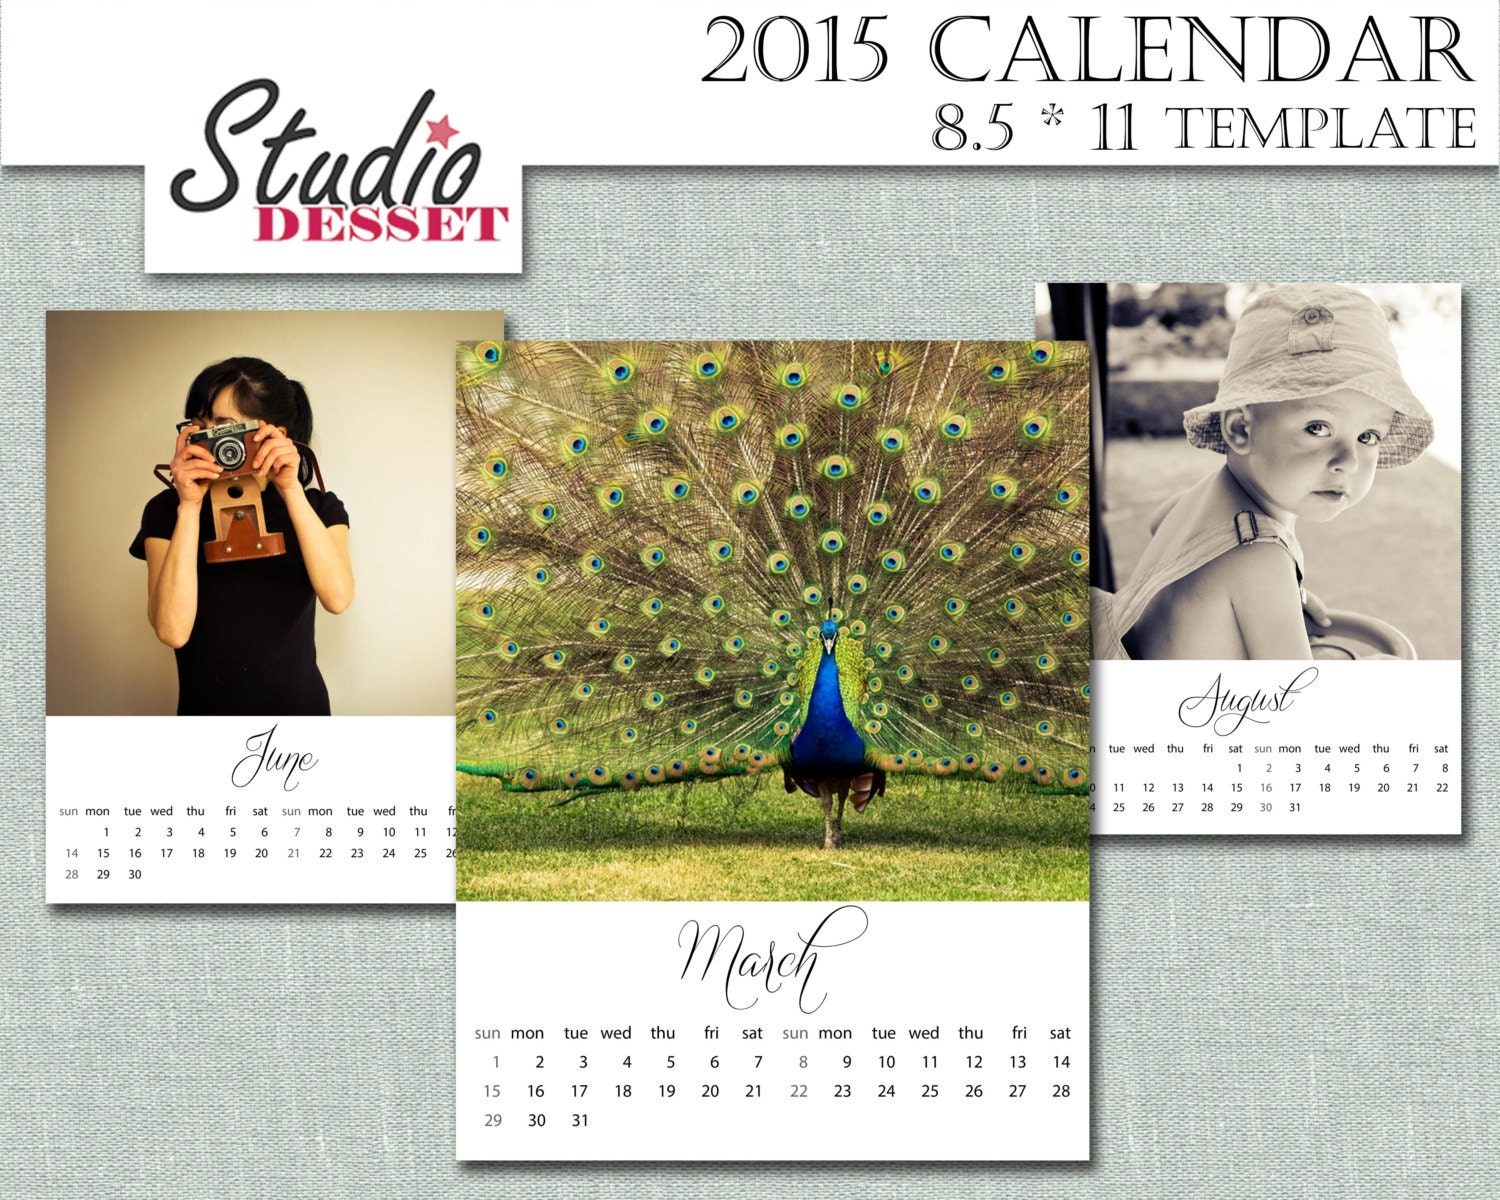 Calendar Diy Software : Calendar diy template by studiodesset